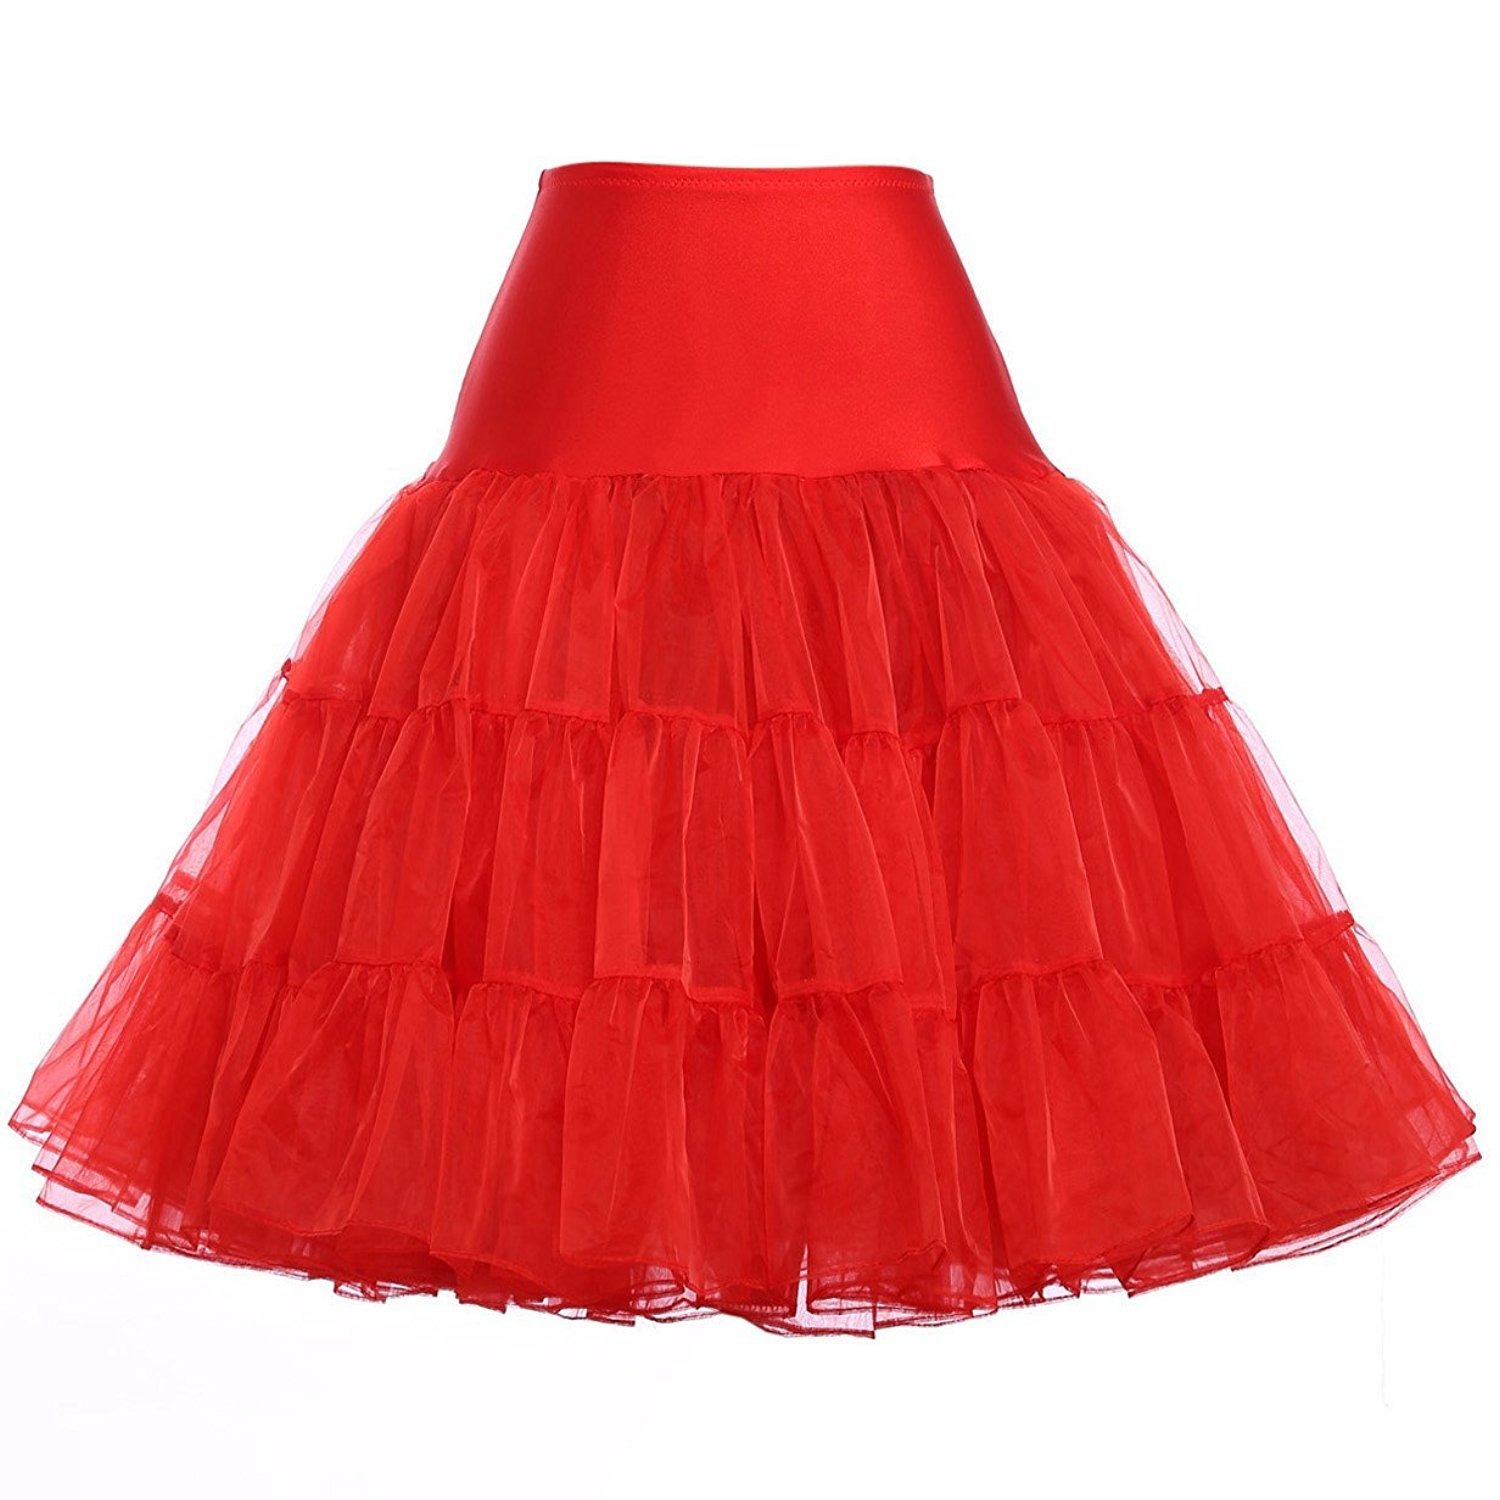 Wishopping Women 1950s Rockabilly Tutu Skirt Crinoline Petticoat P18 Red Size S WP18RD-S